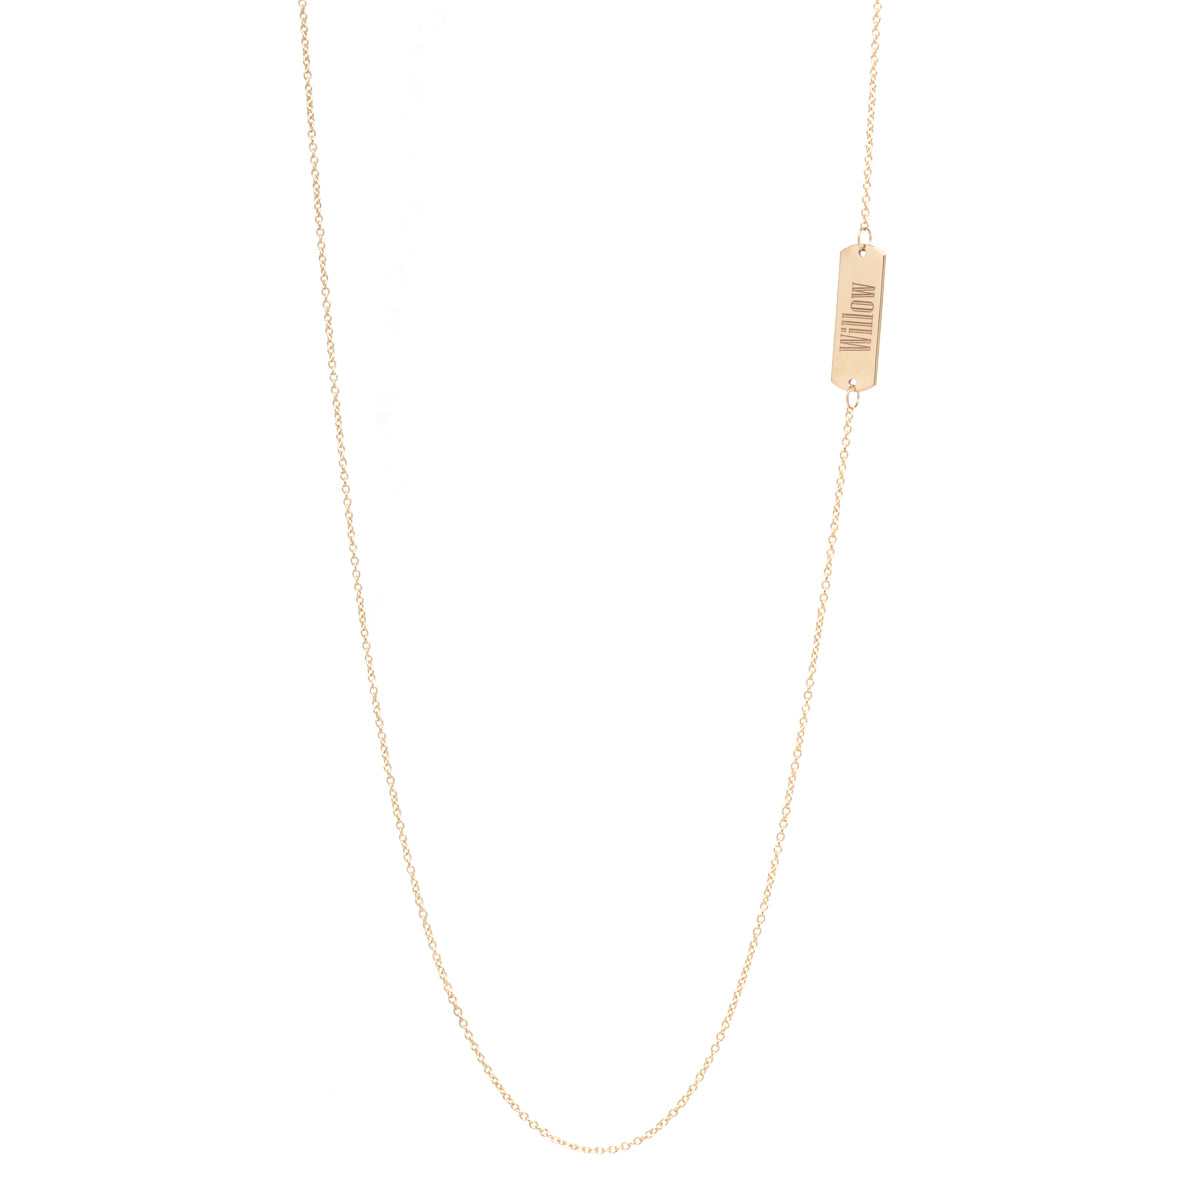 14k long ID necklace